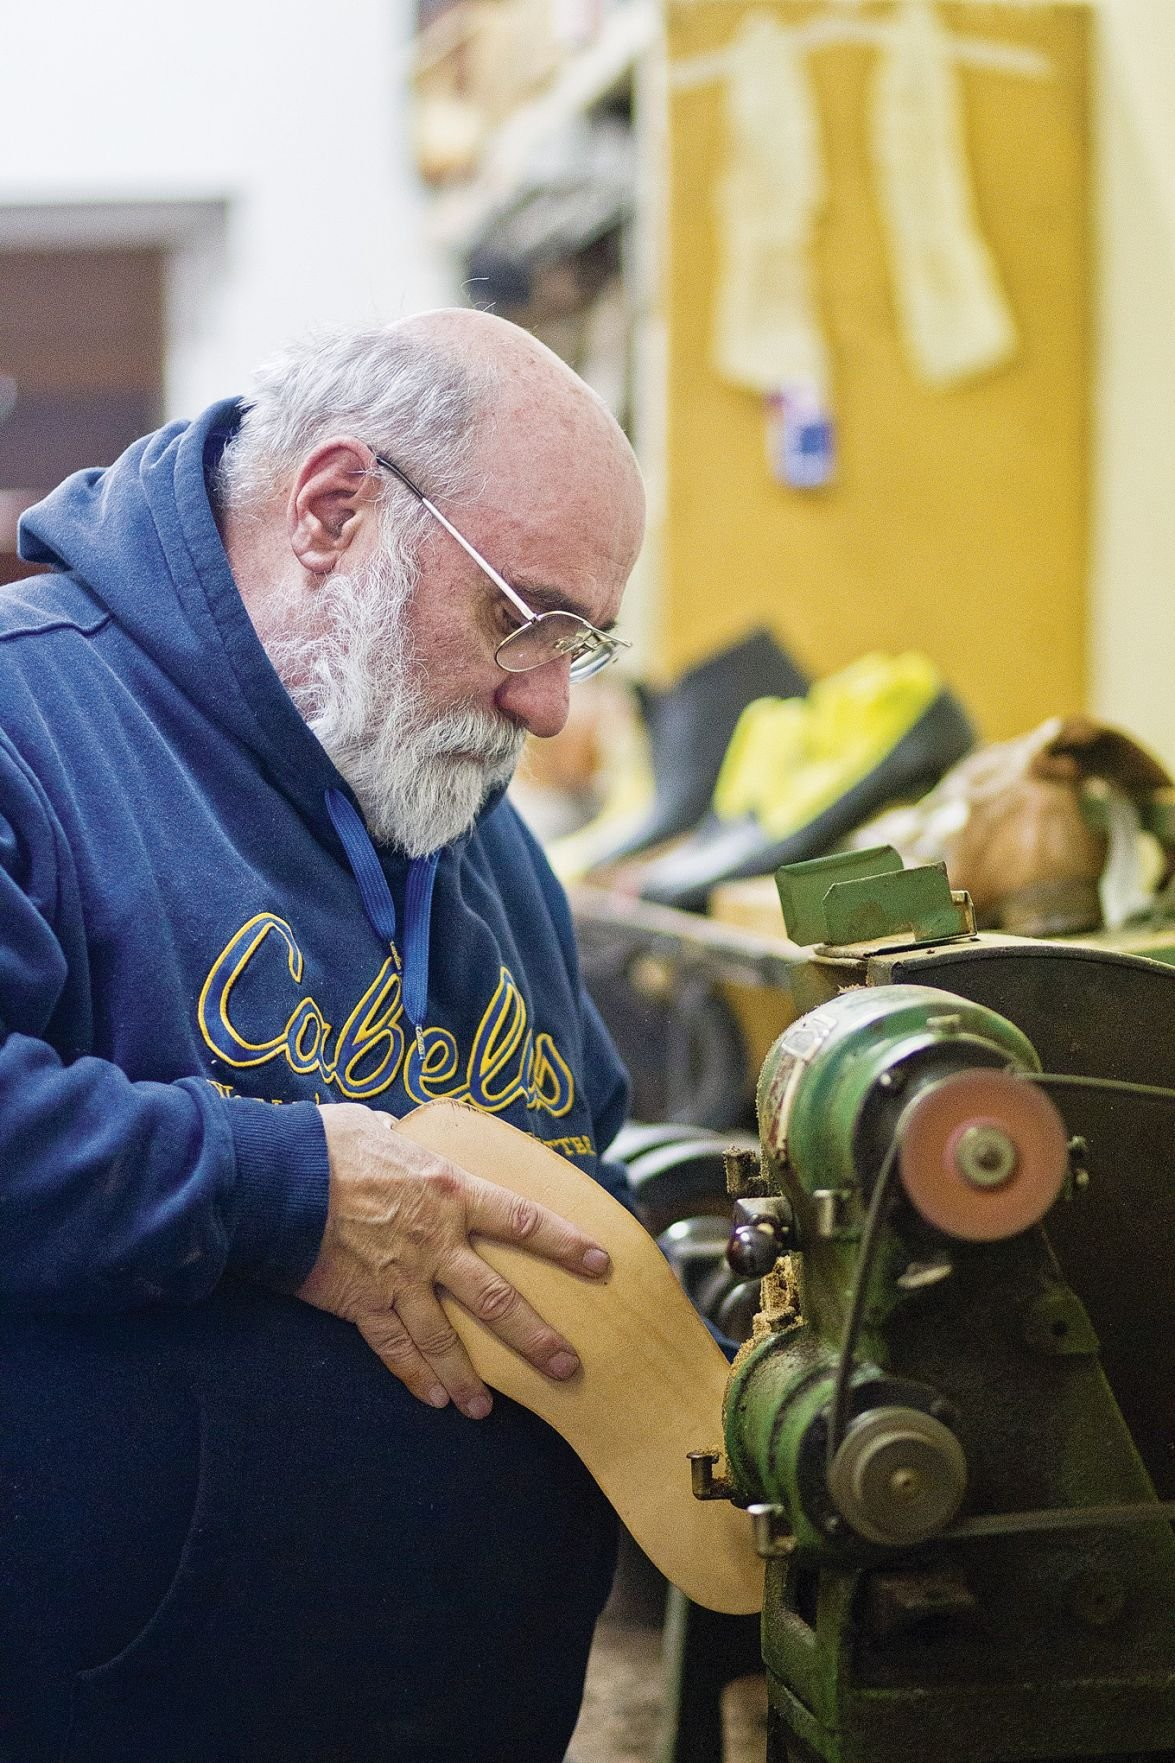 fe7ce3fe00 Shoemaker passes trade to the next generation | Wyoming News ...